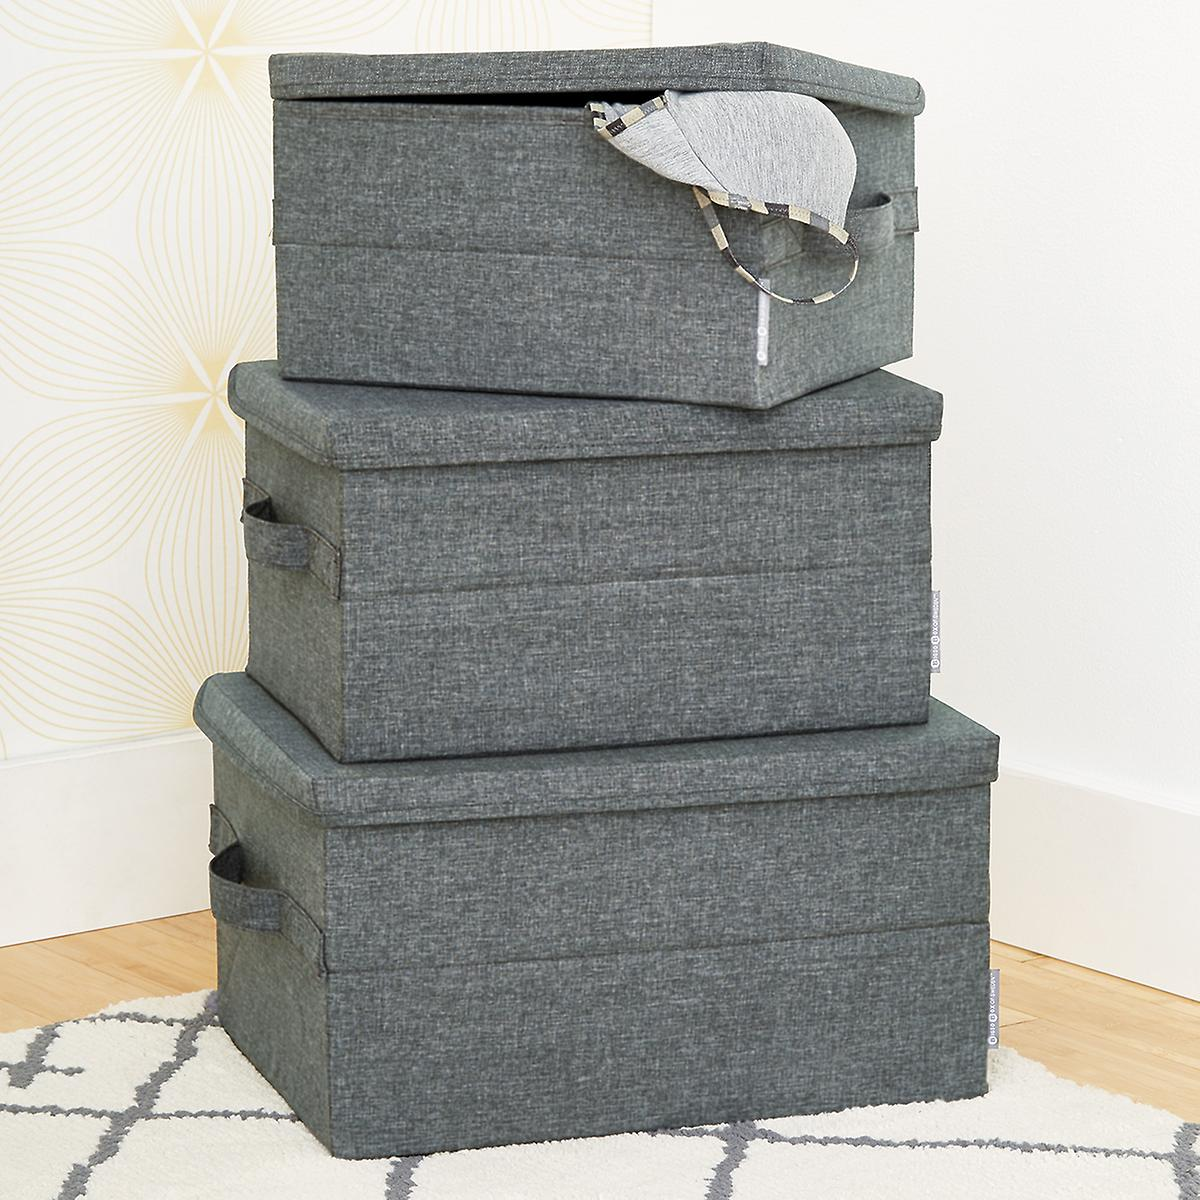 Bigso Grey Soft Storage Boxes with Handles, $13+ at The Container Store - These grey fabric boxes are pretty enough for your closet shelf or anywhere else visible in your home!